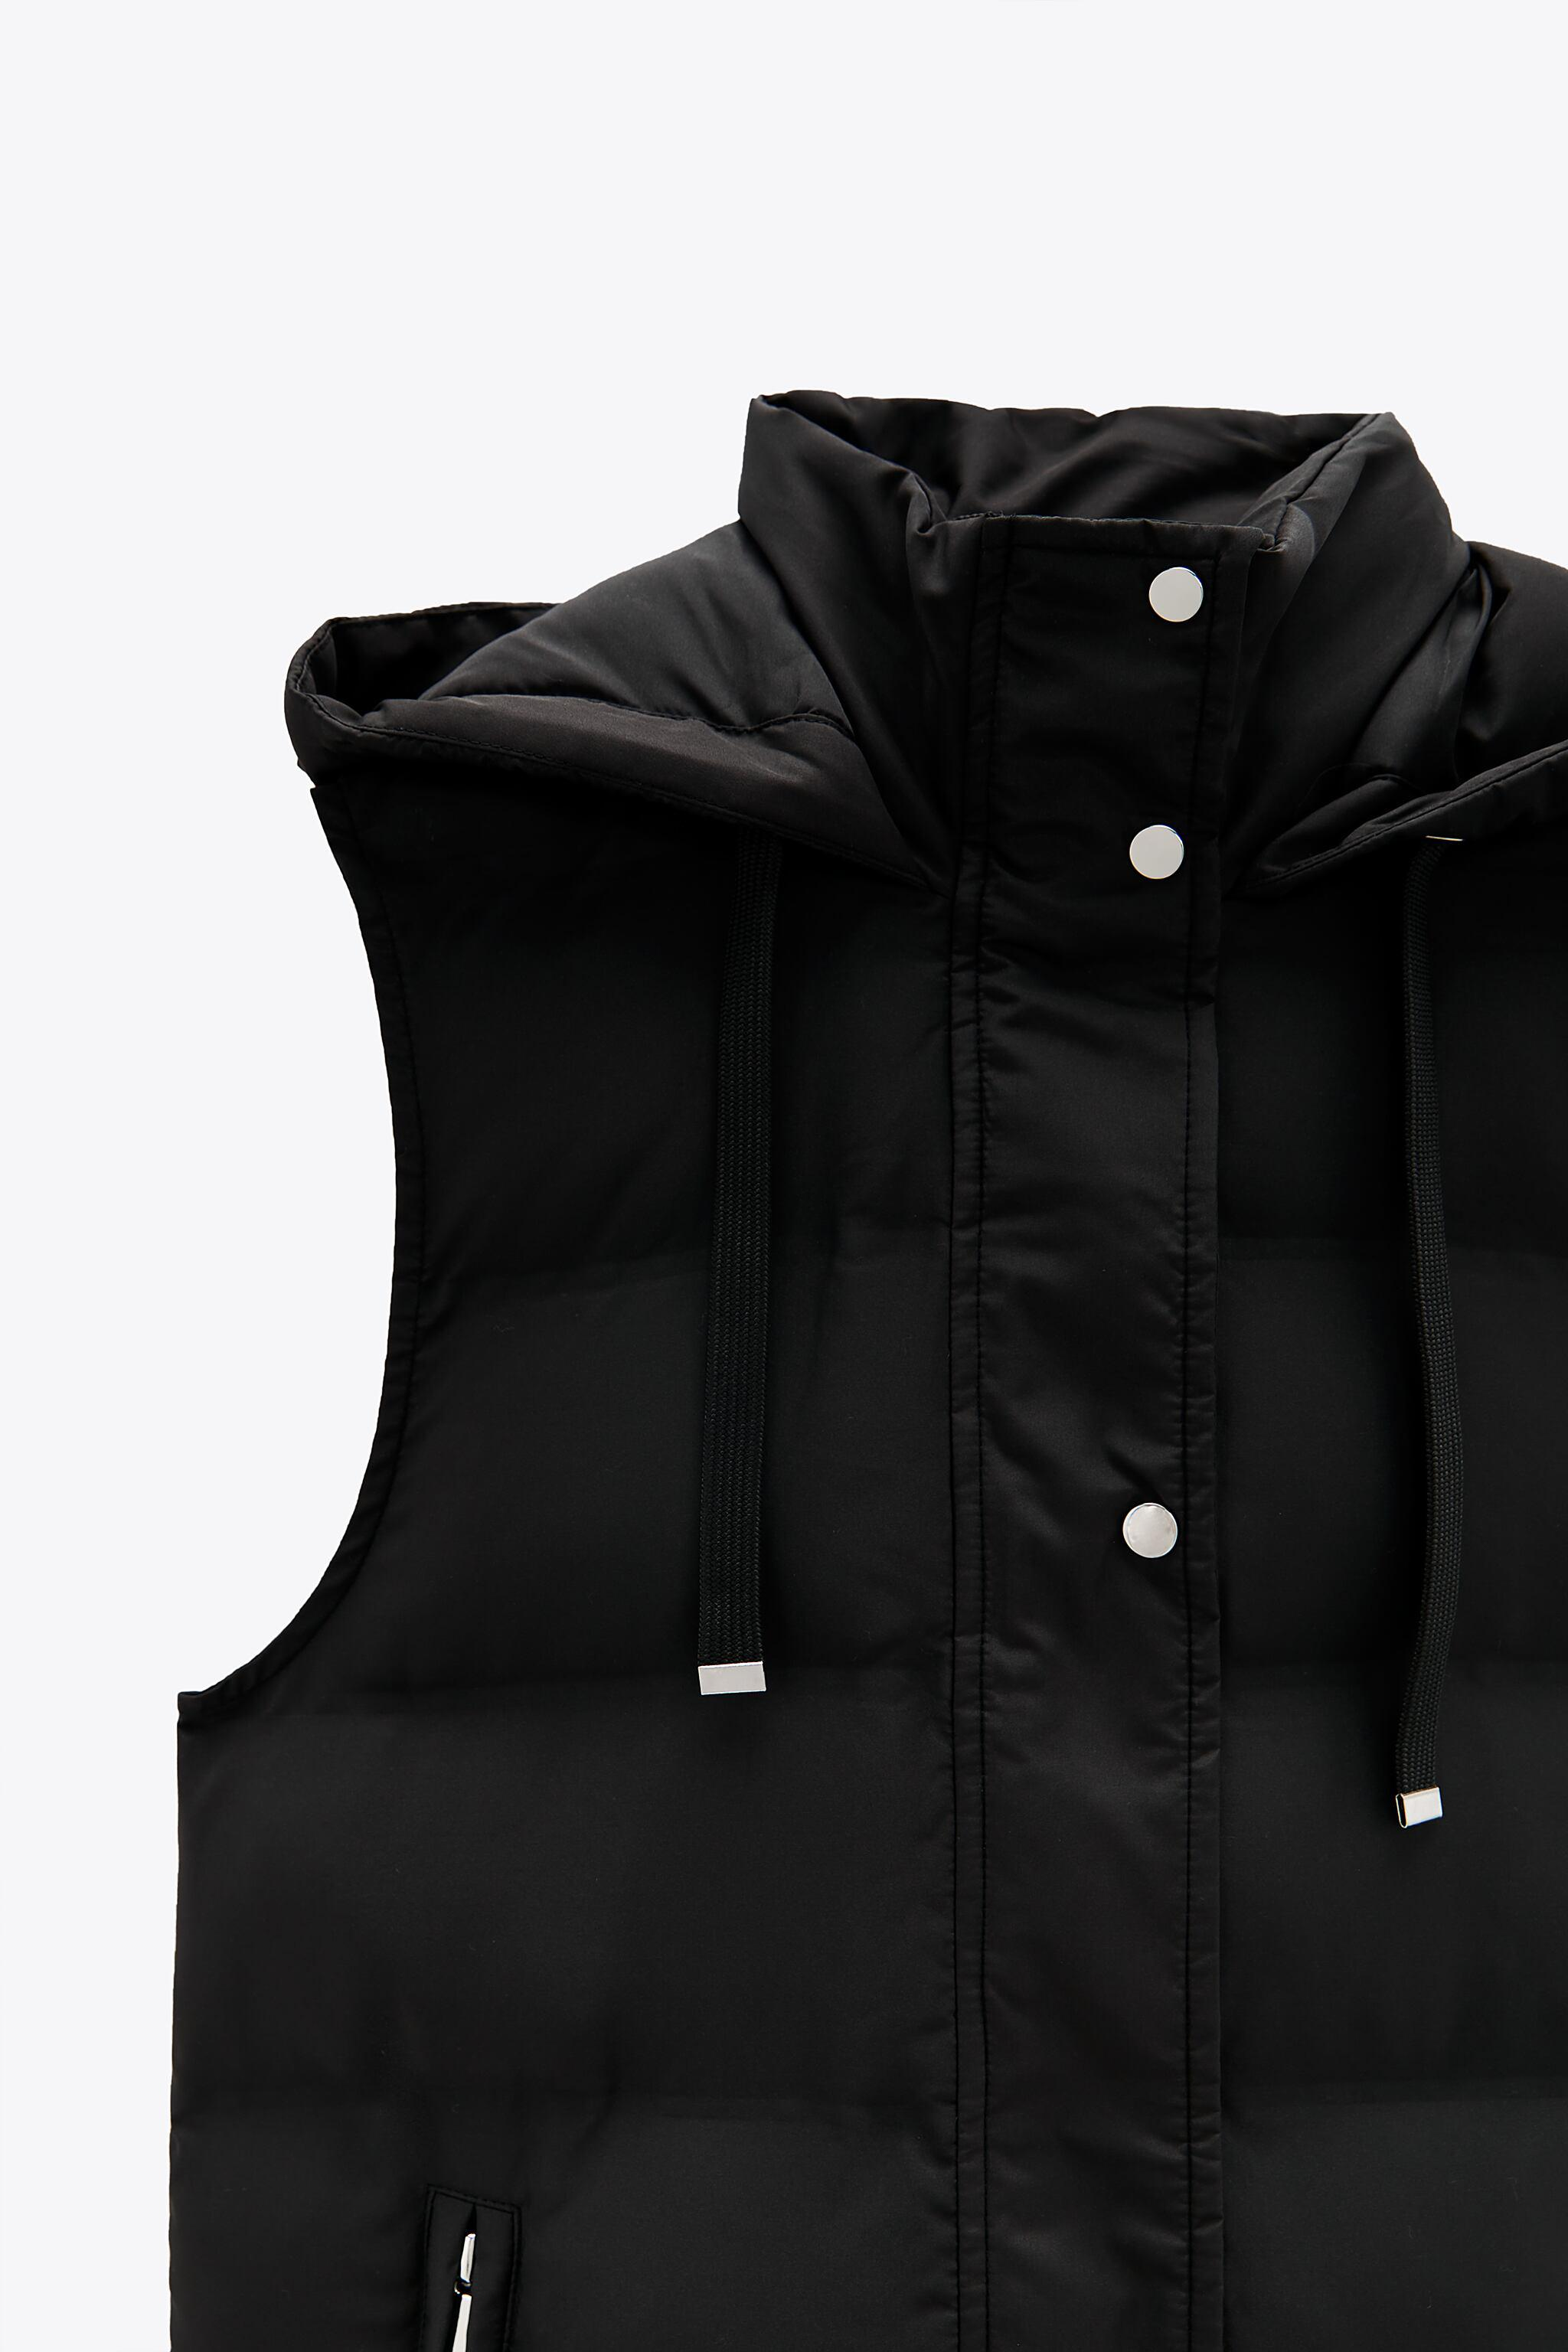 WATER AND WIND PROTECTION PADDED VEST 8